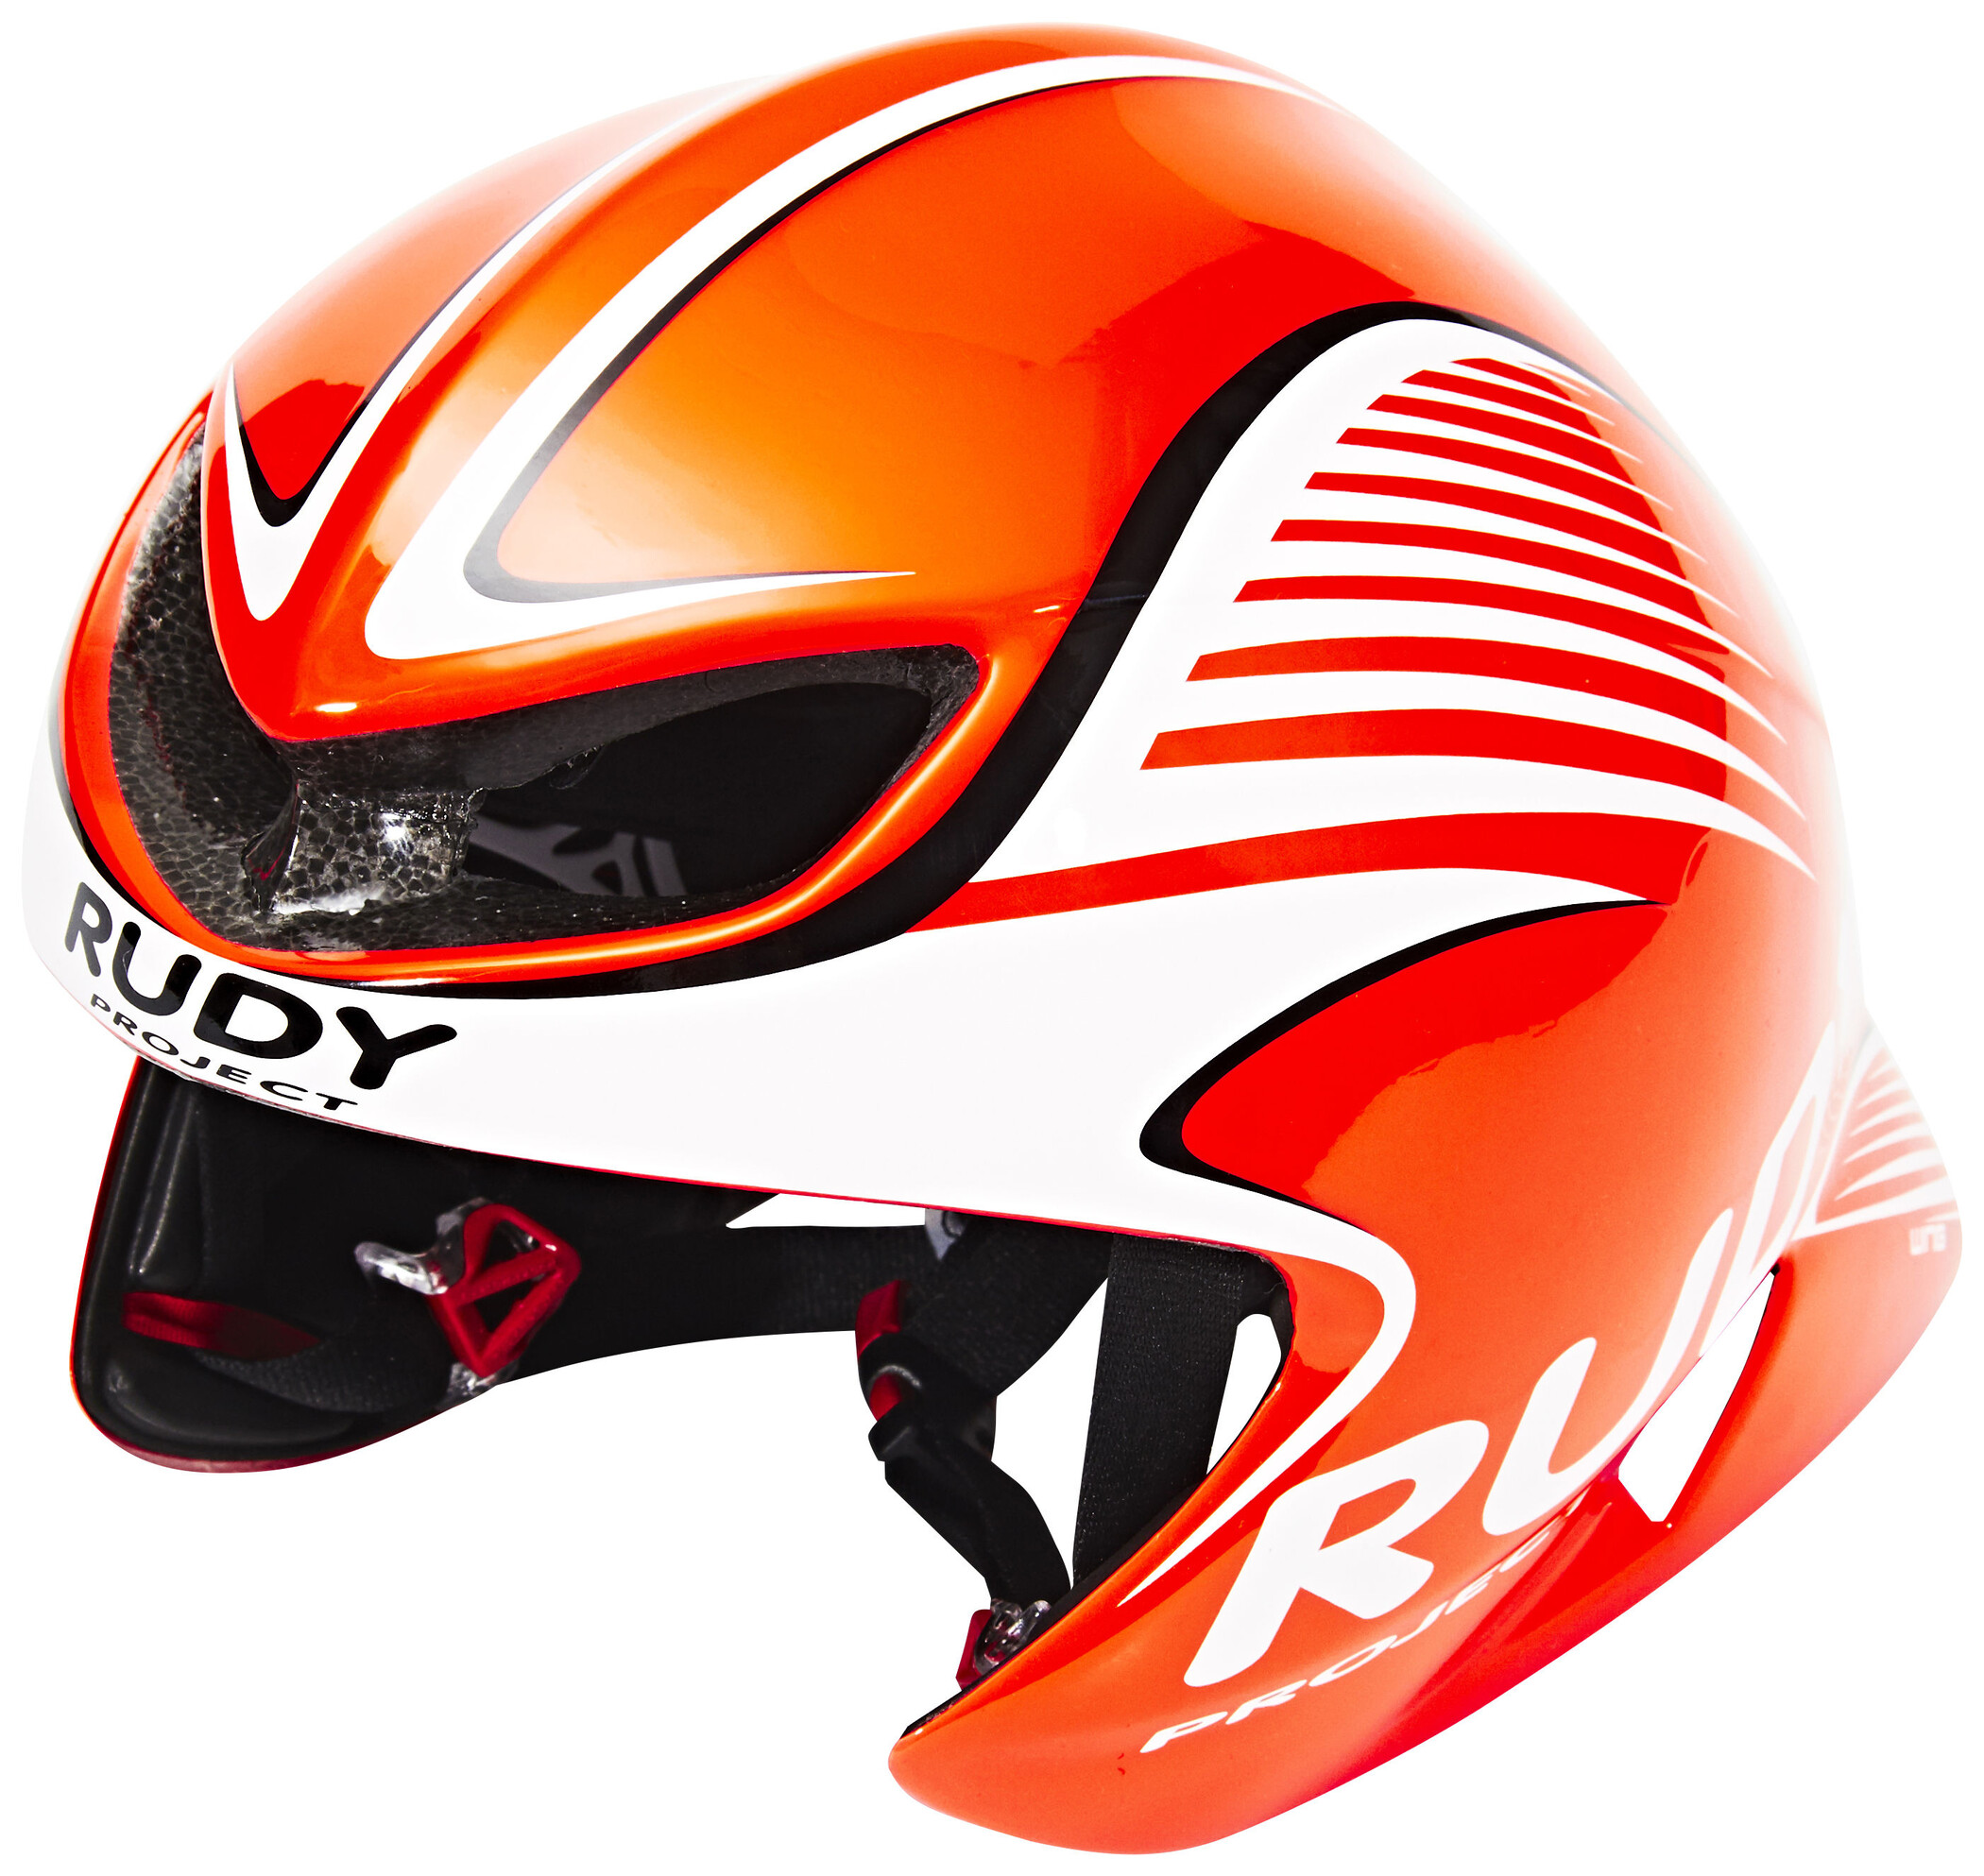 Rudy Project Wing57 Cykelhjelm, red fluo / white (shiny) (2019) | Helmets